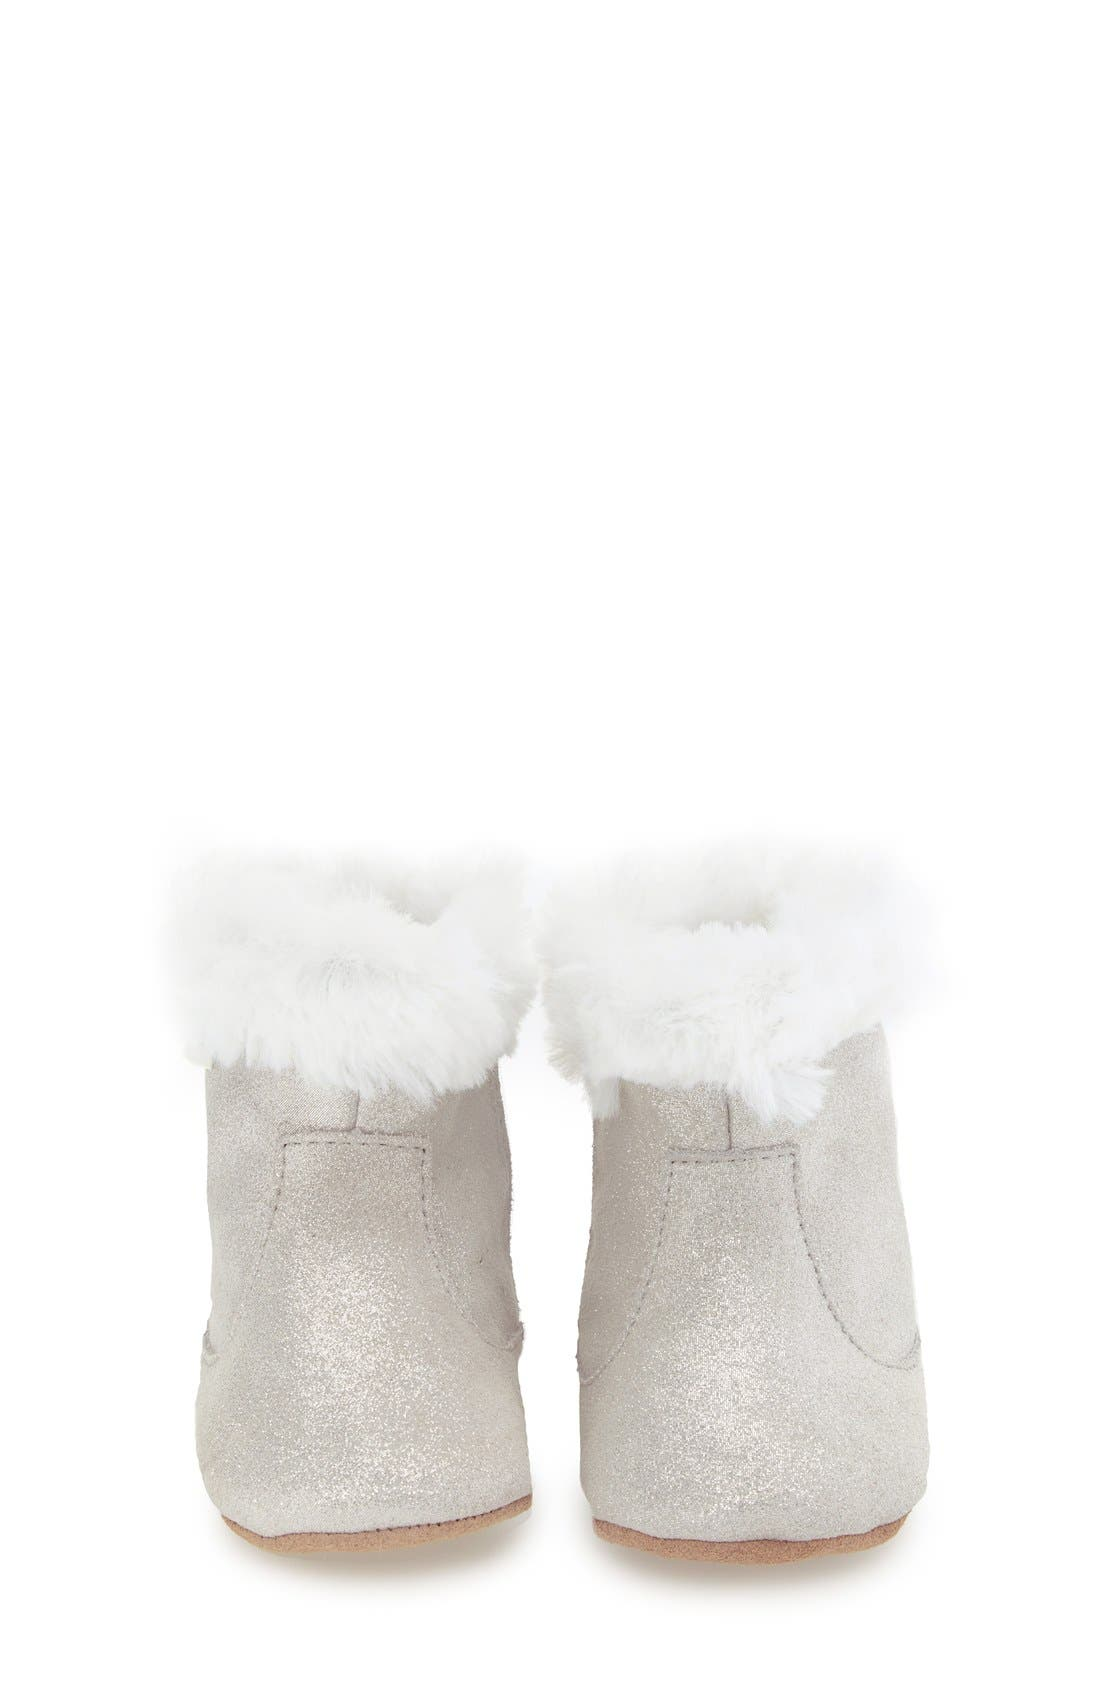 'Thea Twinkle' Bootie,                             Alternate thumbnail 3, color,                             Grey Sparkle Suede